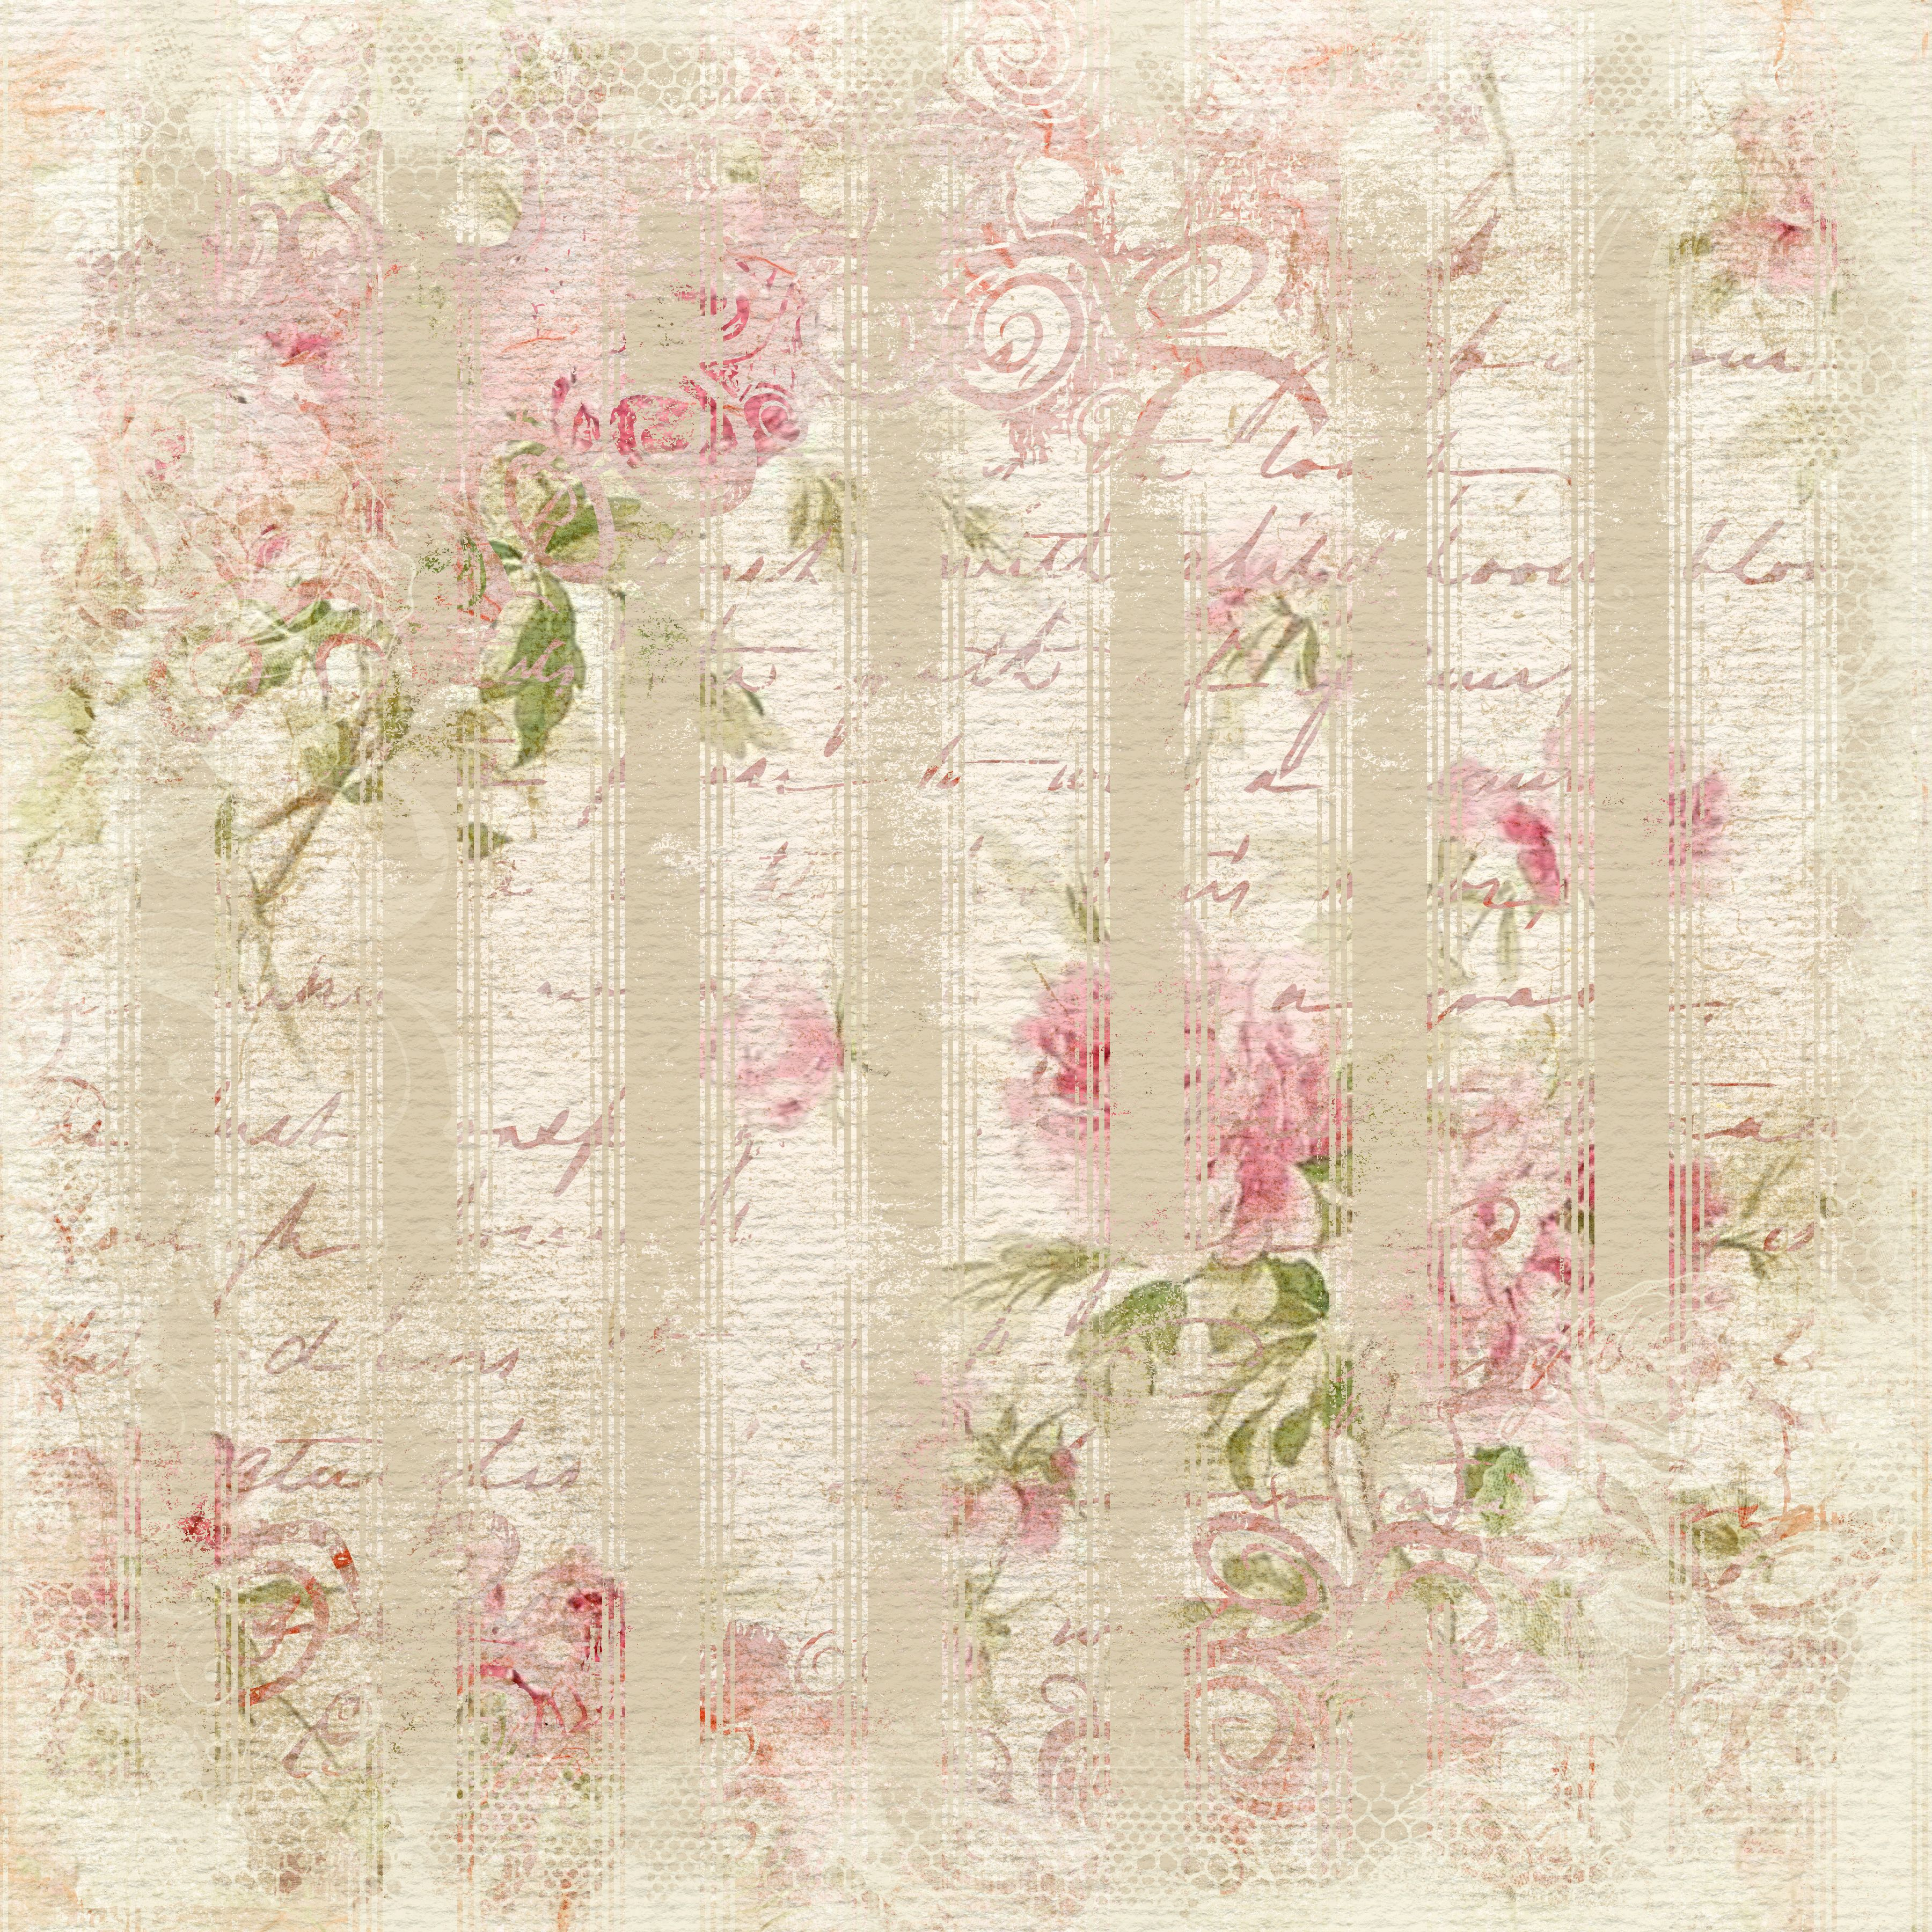 Pin By Teresa Benedict On Free Floral Paper Pinterest Decoupage